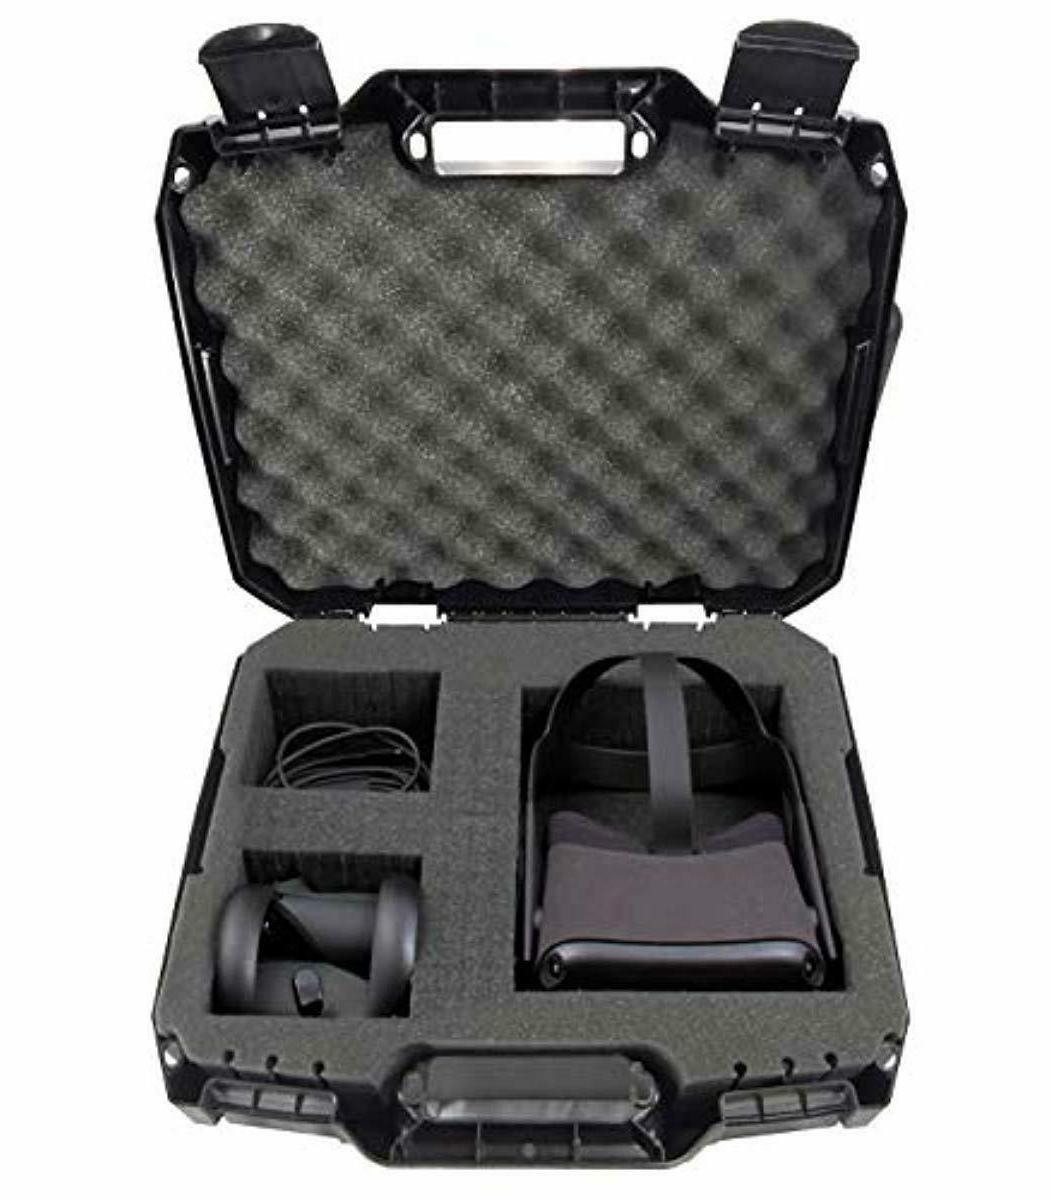 carry case with customizable foam compatible